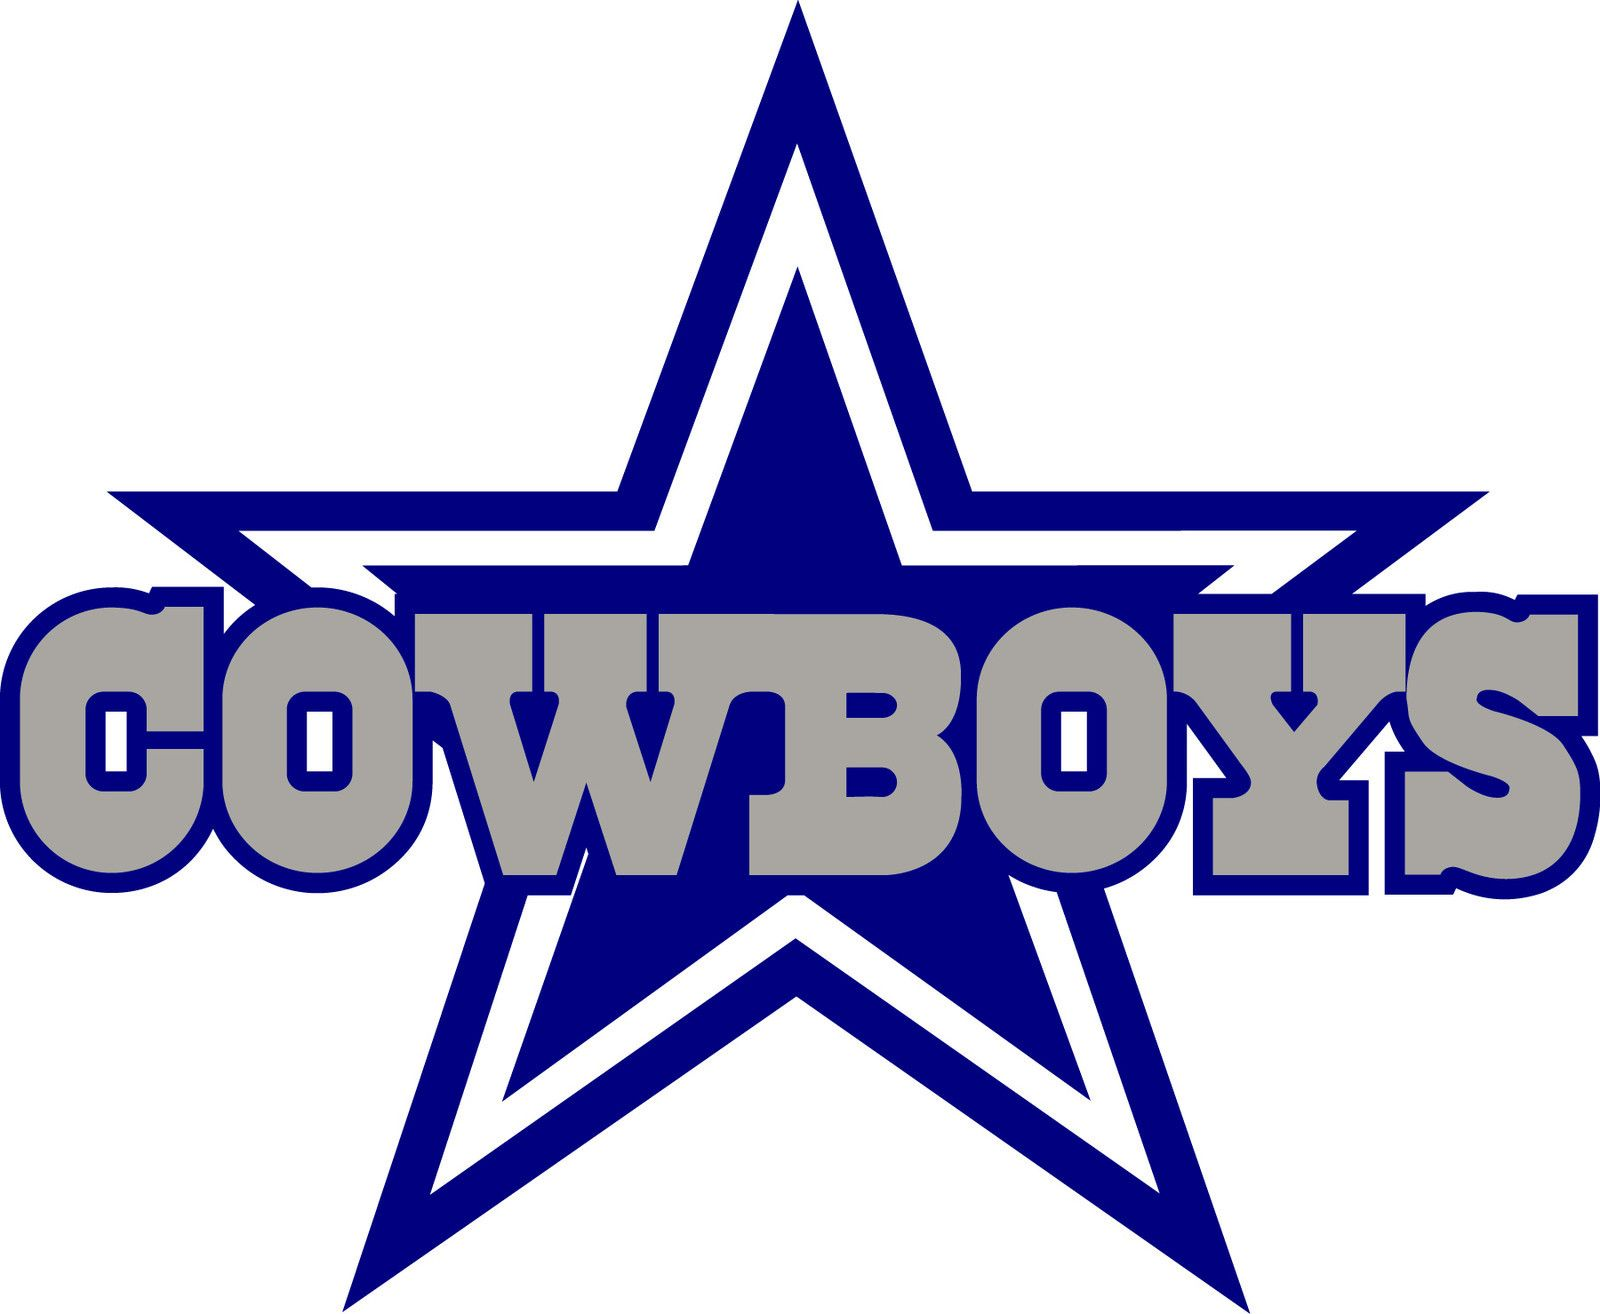 DALLAS COWBOYS STAR Logo Window Wall STICKER Vinyl Car DECAL - Cowboy custom vinyl decals for trucks